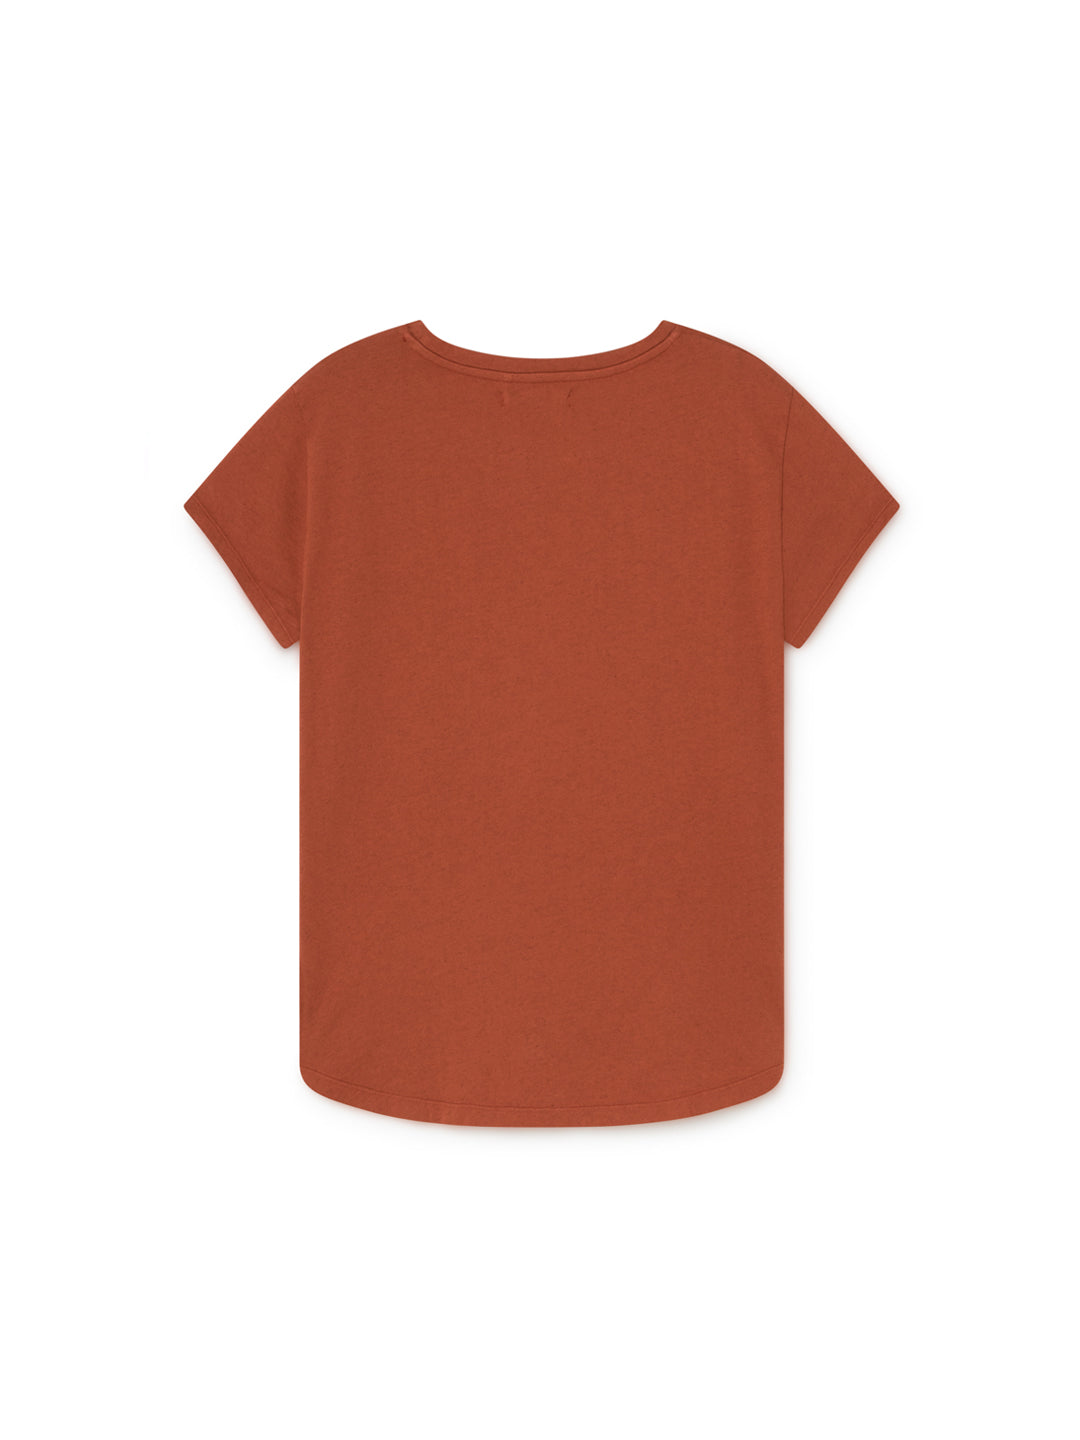 TWOTHIRDS Womens Tee: Pianosa - Picante back